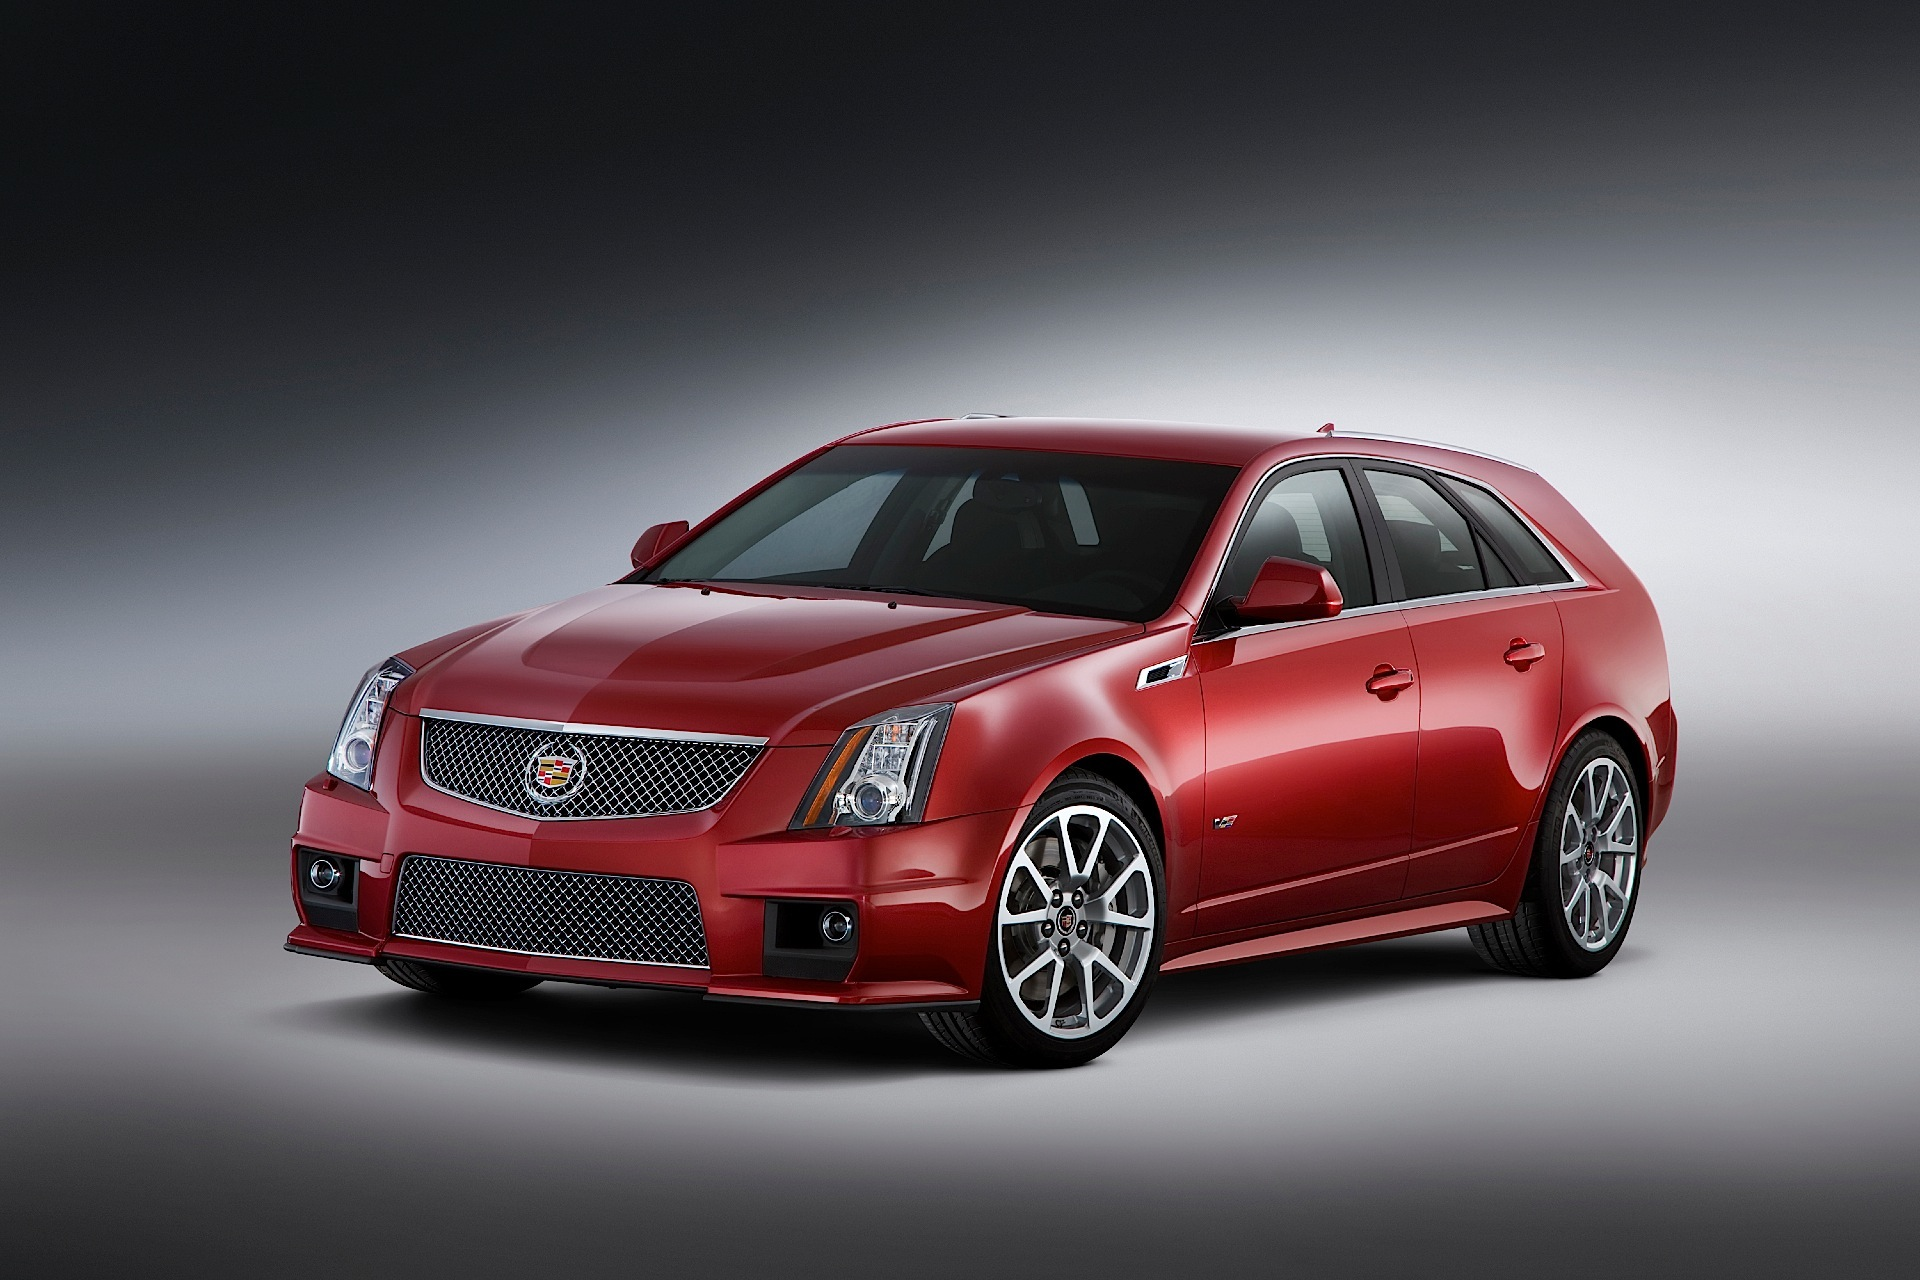 cadillac cts v sport wagon specs photos 2010 2011 2012 2013 2014 2015 2016 2017 2018. Black Bedroom Furniture Sets. Home Design Ideas